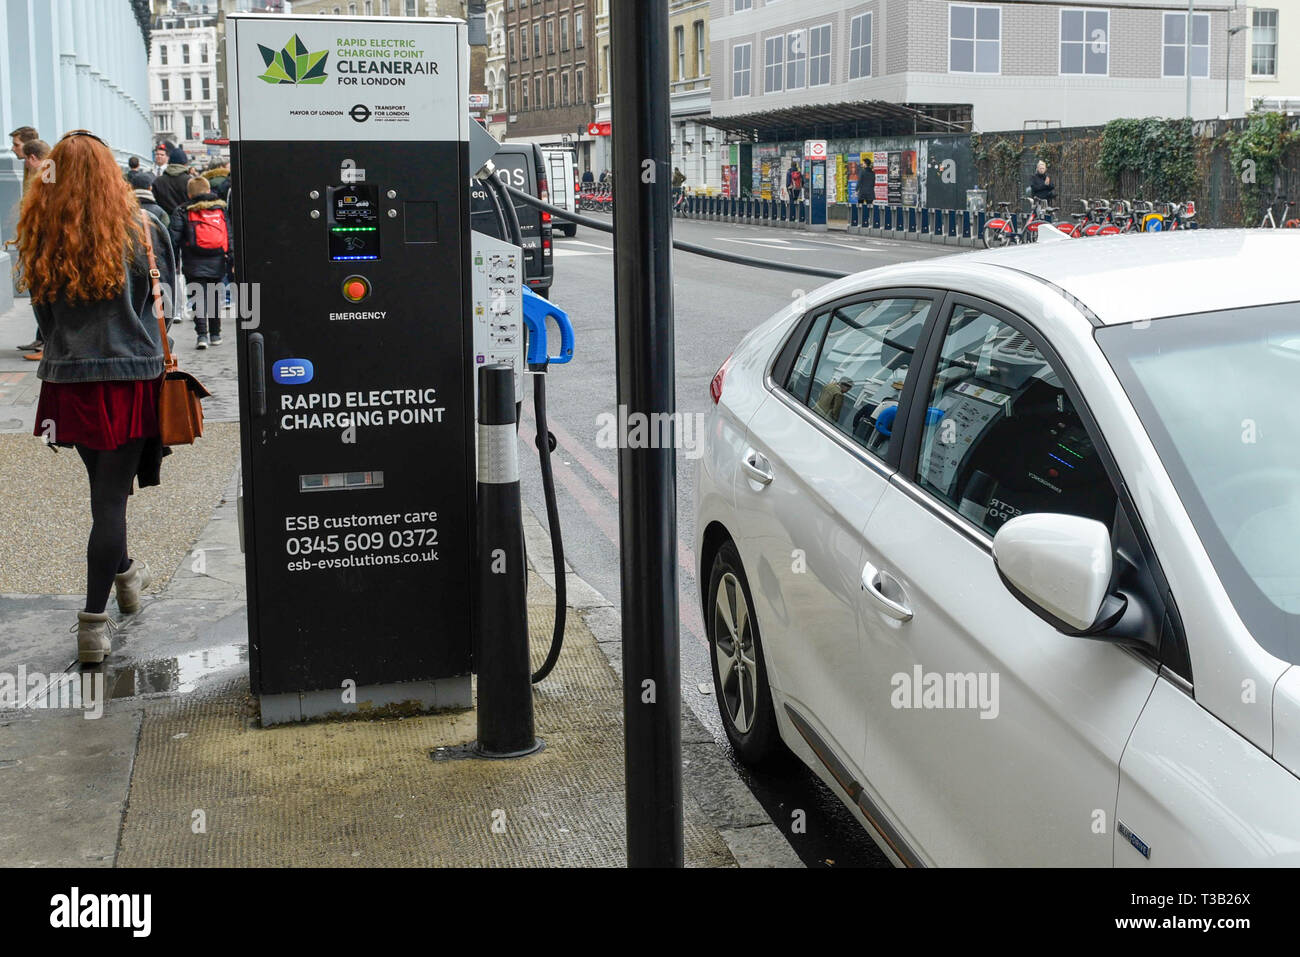 London, UK.  8 April 2019.  An electric car in Southwark is charged at a fast roadside charging point. Electric cars are exempt from the Ultra Low Emission Zone which is in force 24 hours a day.  Coming into effect on 8 April, within the same area of central London as the Congestion Charge, most vehicles, including cars and vans, need to meet the ULEZ emissions standards or their drivers must pay a daily charge to drive within the zone.  The ULEZ is an initiative to improve air quality and public health in central London and is supported by the Mayor of London. Credit: Stephen Chung / Alamy Li - Stock Image